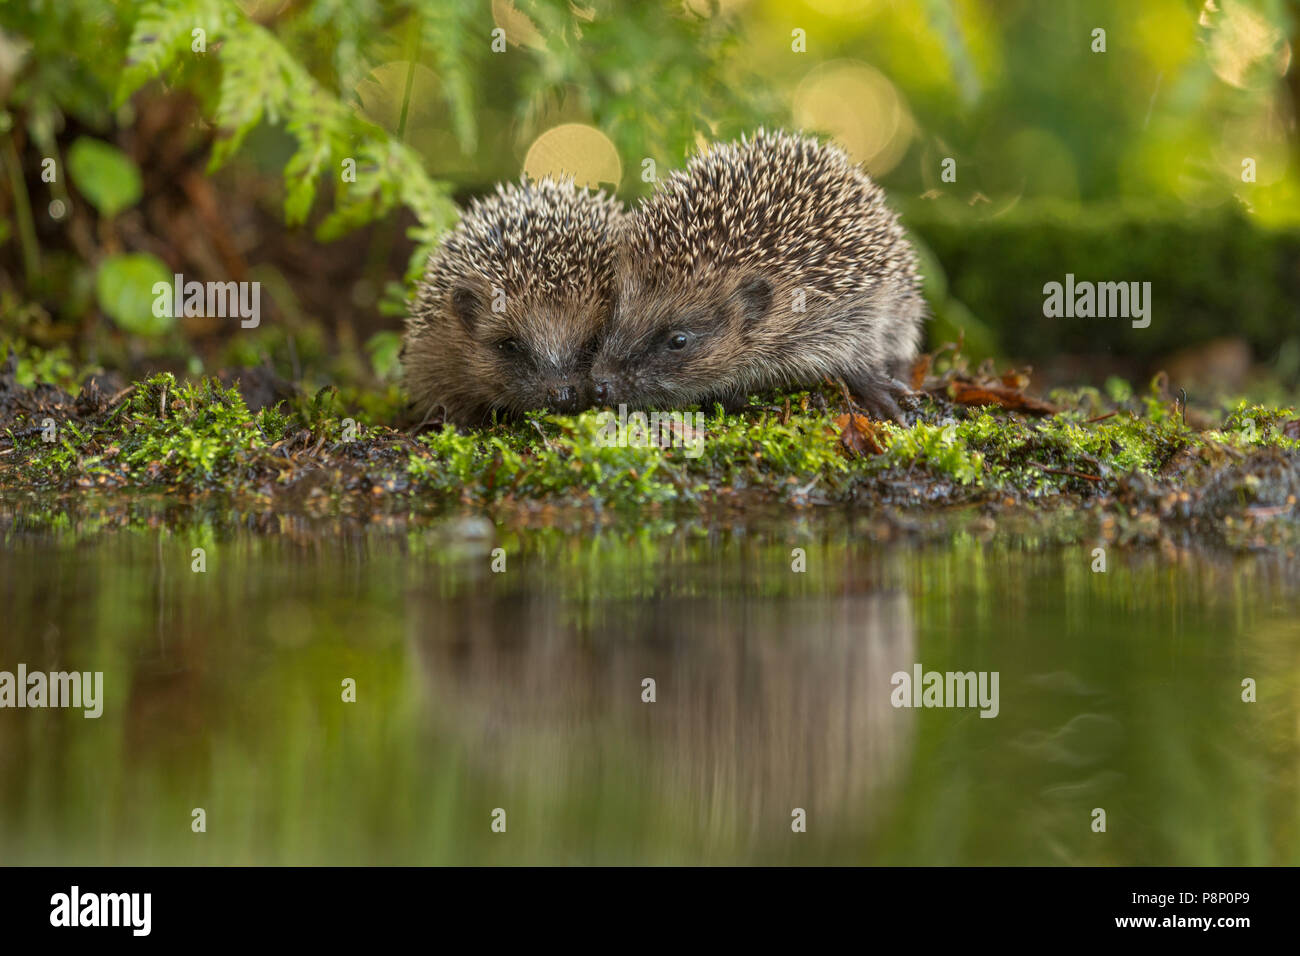 two hedgehogs at the waterfront - Stock Image